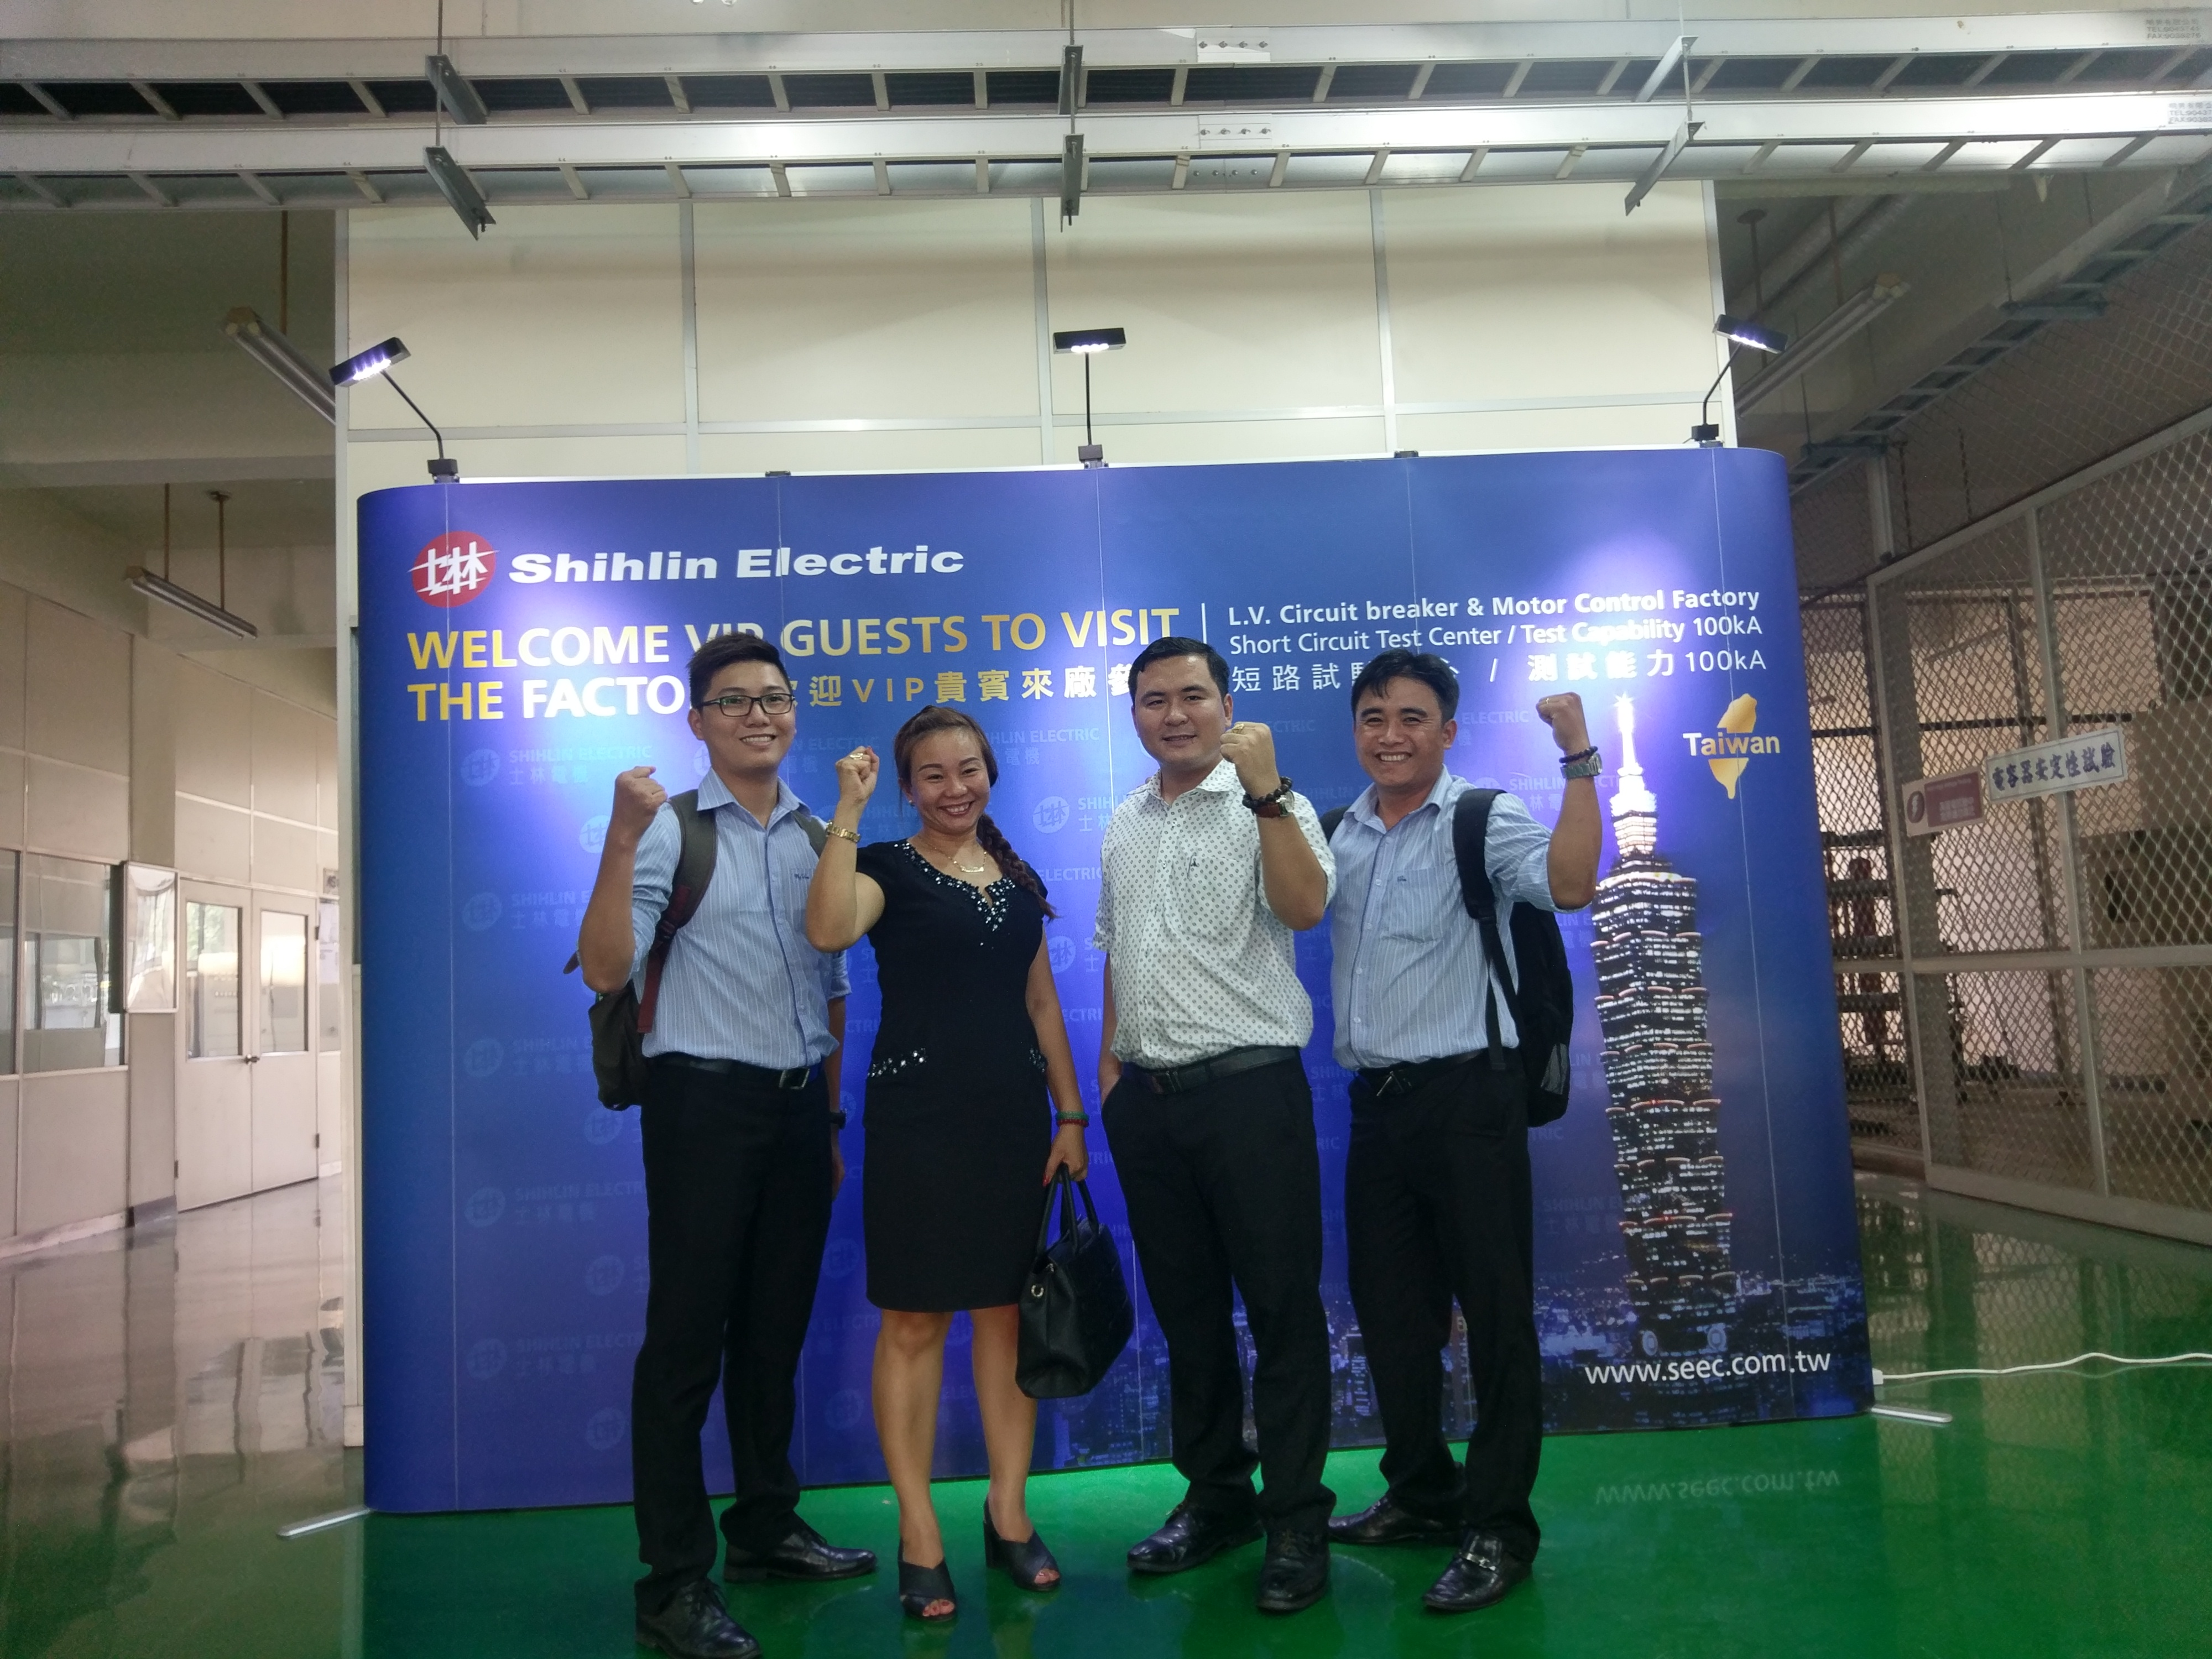 Vietnam customers visit Shihlin Electric